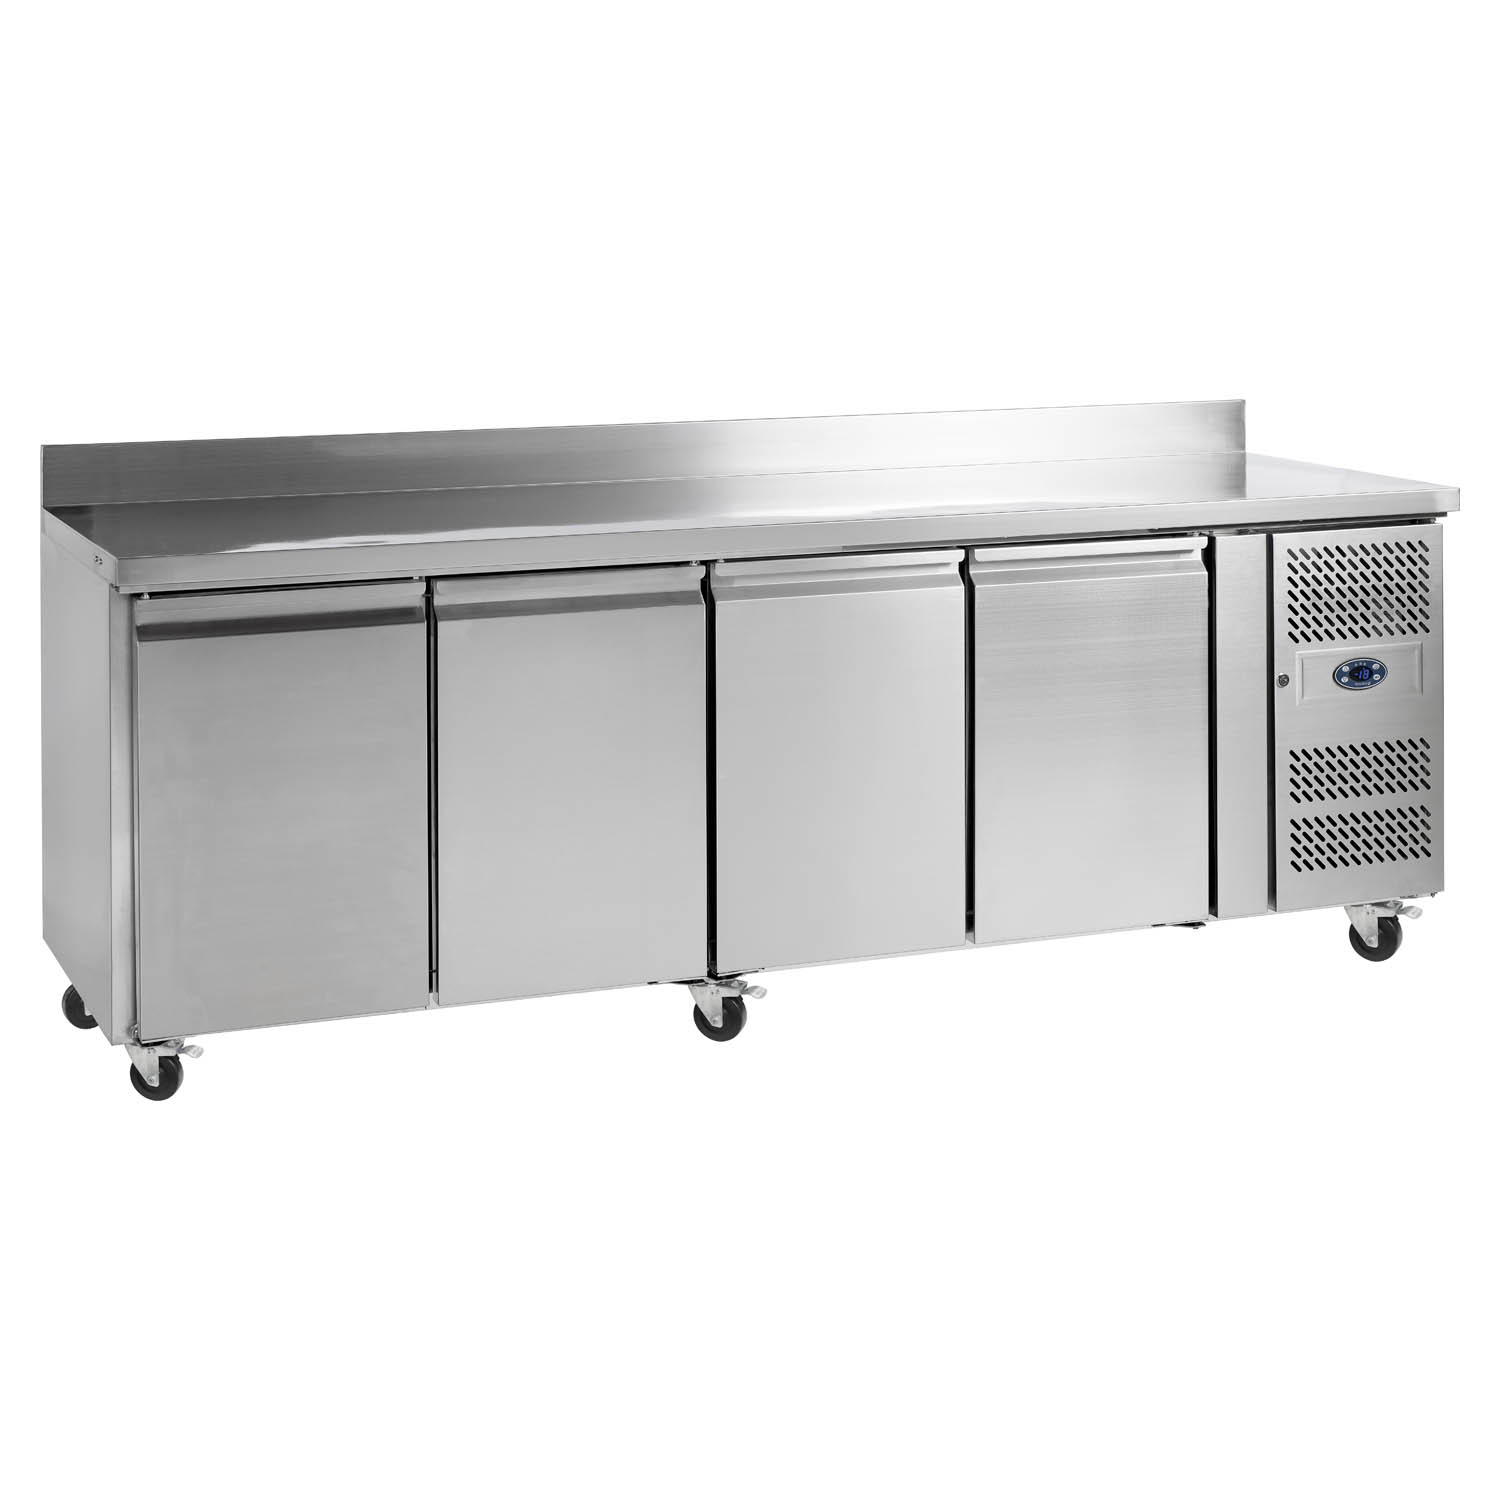 Tefcold CF7410P SS Stainless Steel Gastronorm Counter Freezer 4-Door